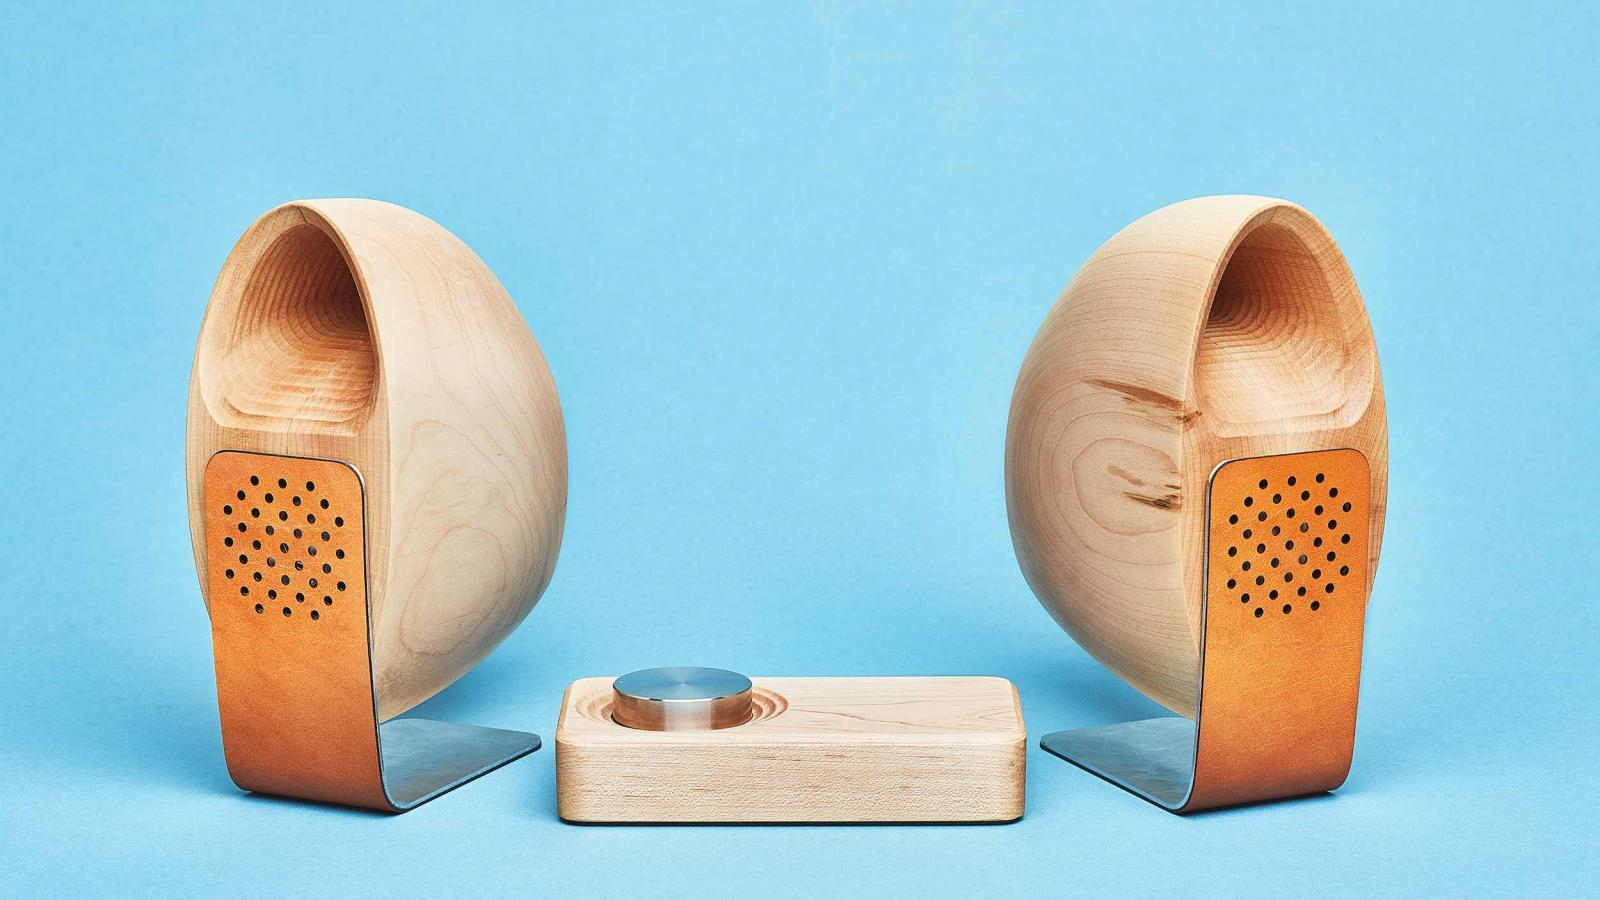 Grovemade's Maple Speakers